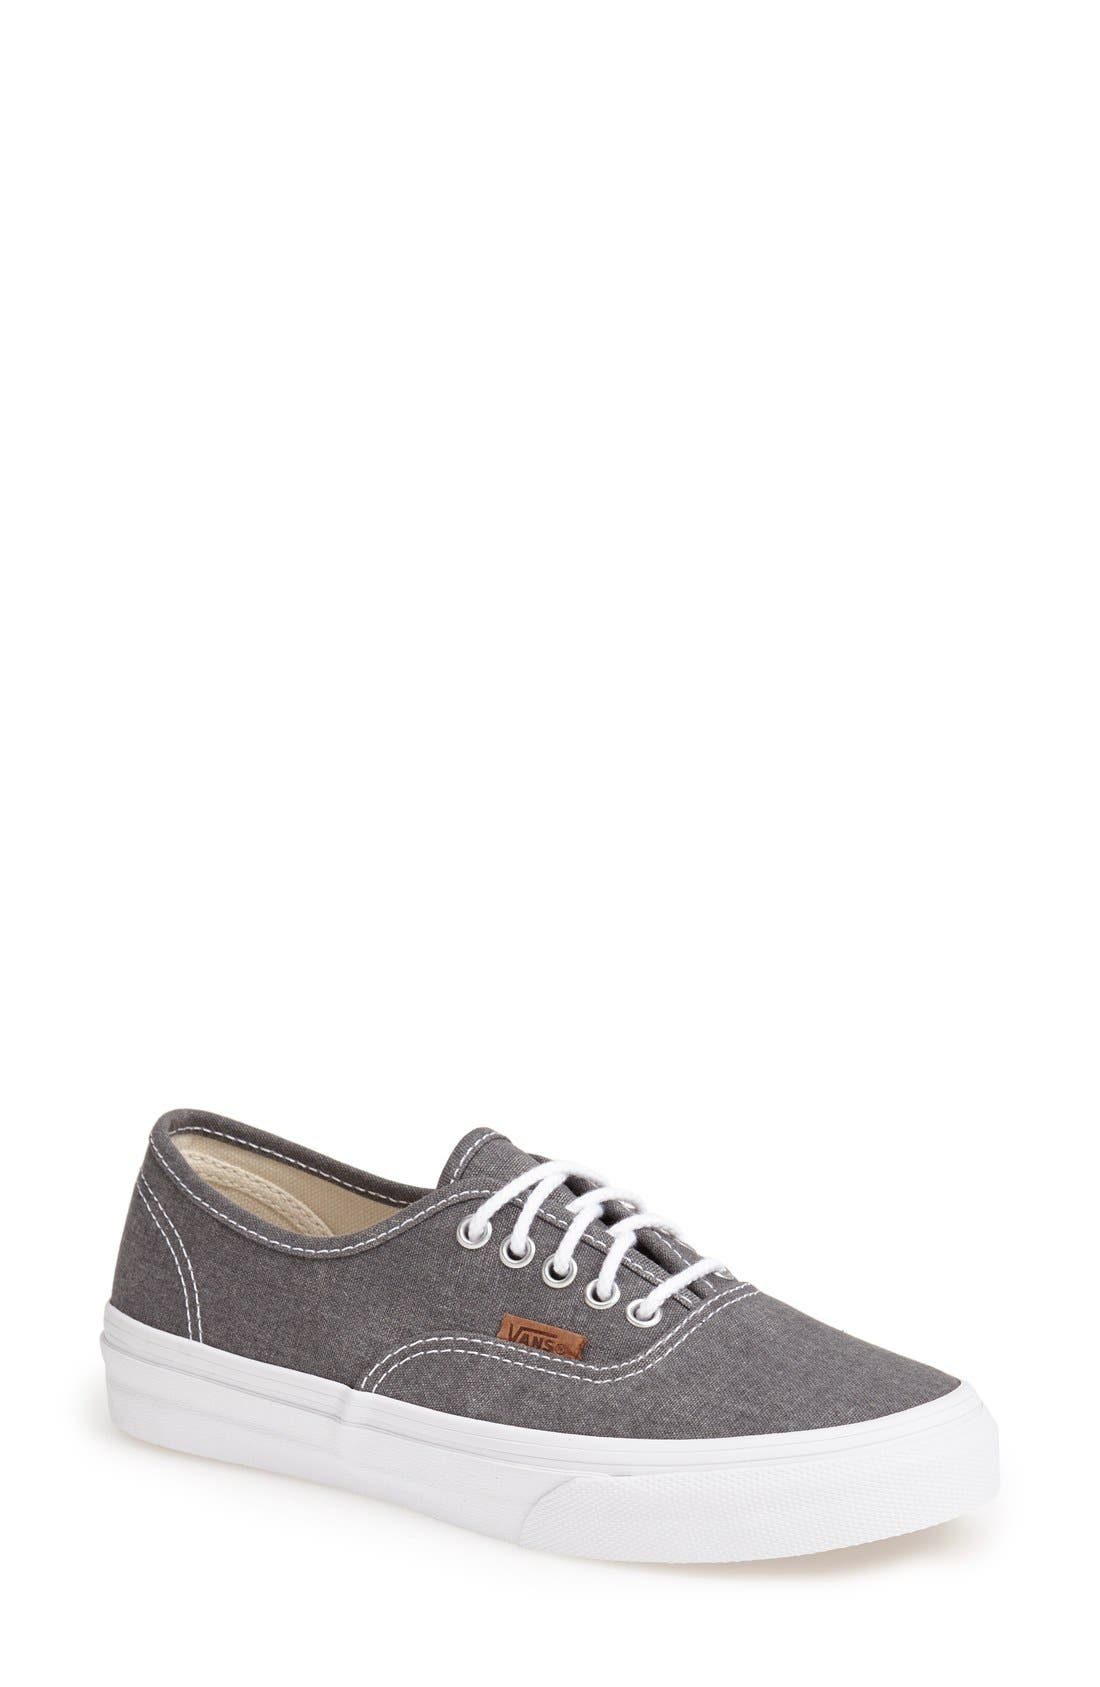 'Authentic - Slim' Washed Sneaker, Main, color, 020